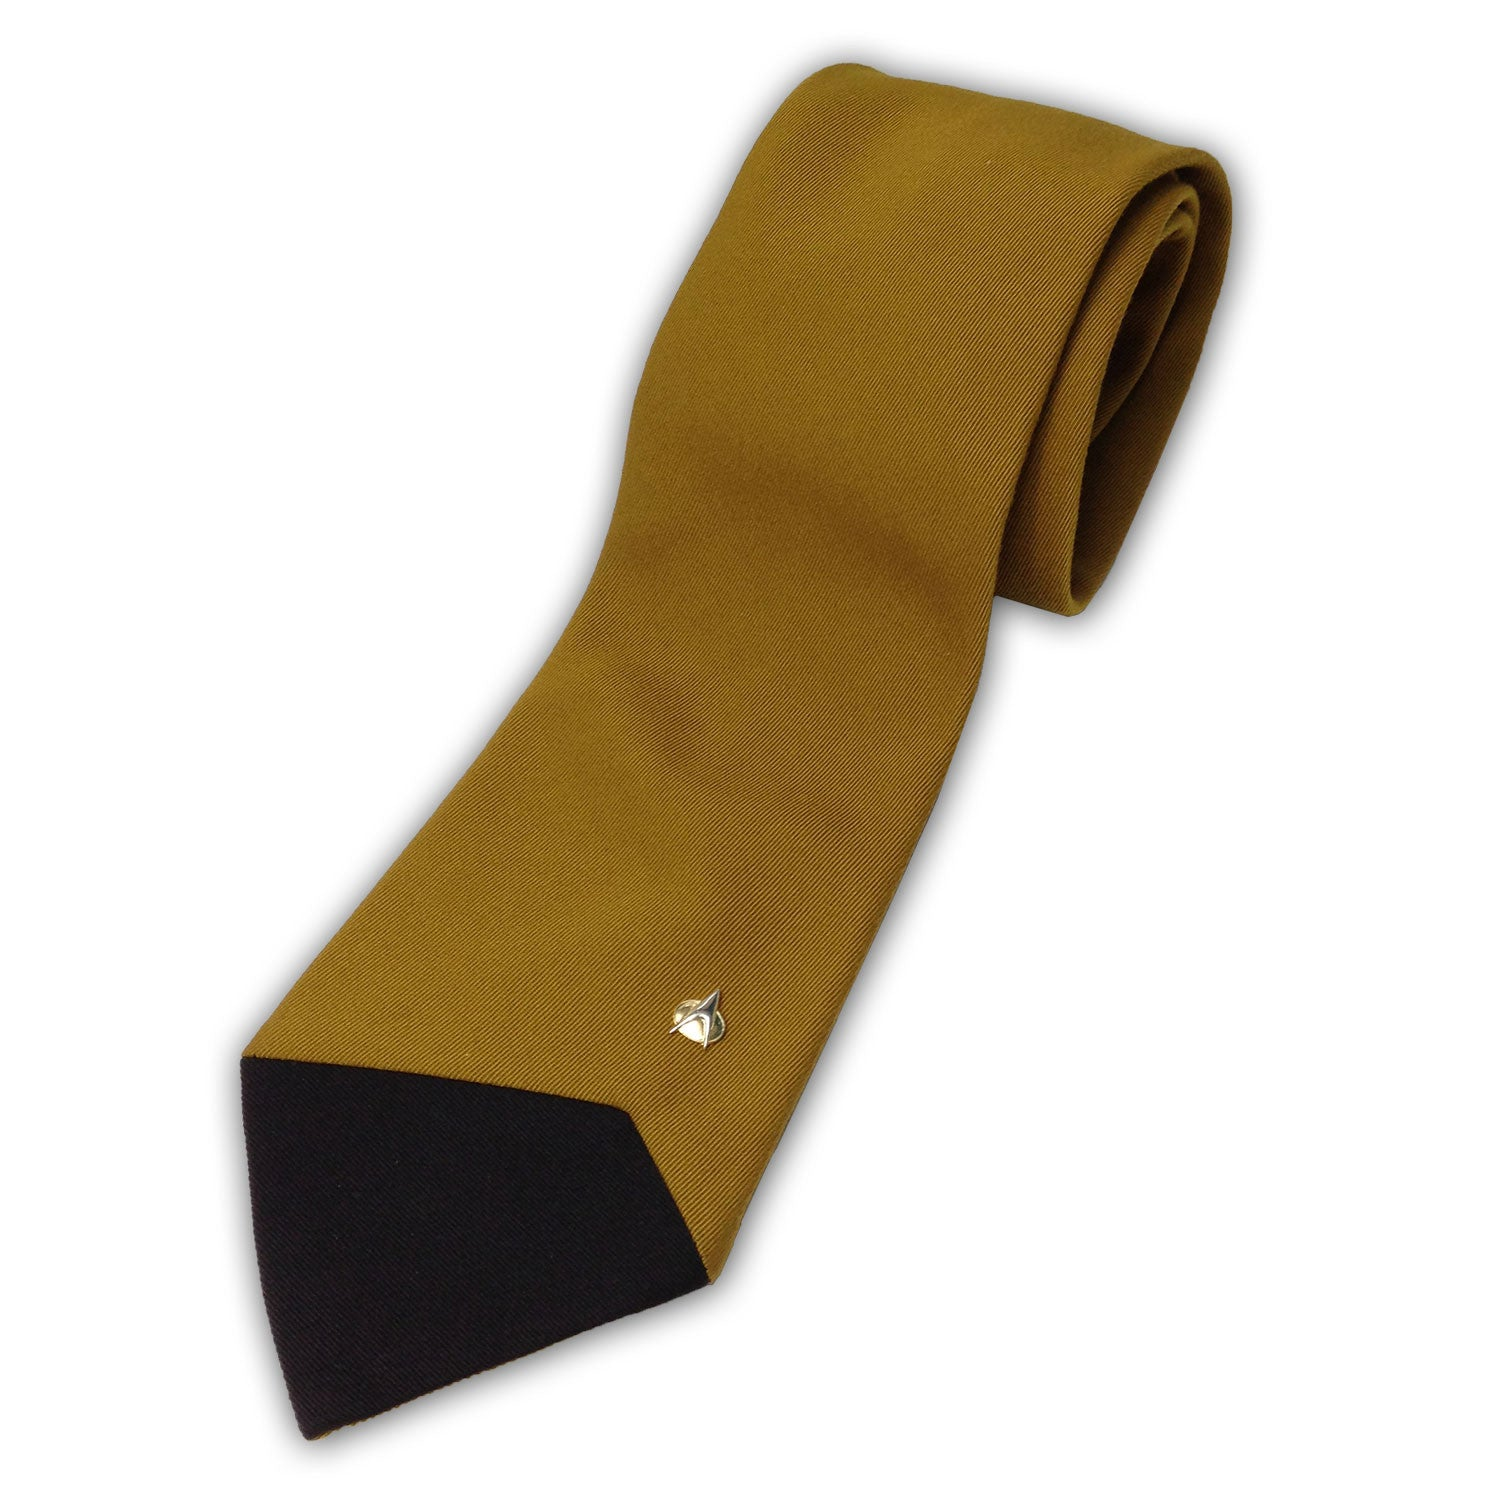 novelty men Fun novelty socks perfect for holidays & special occasions.